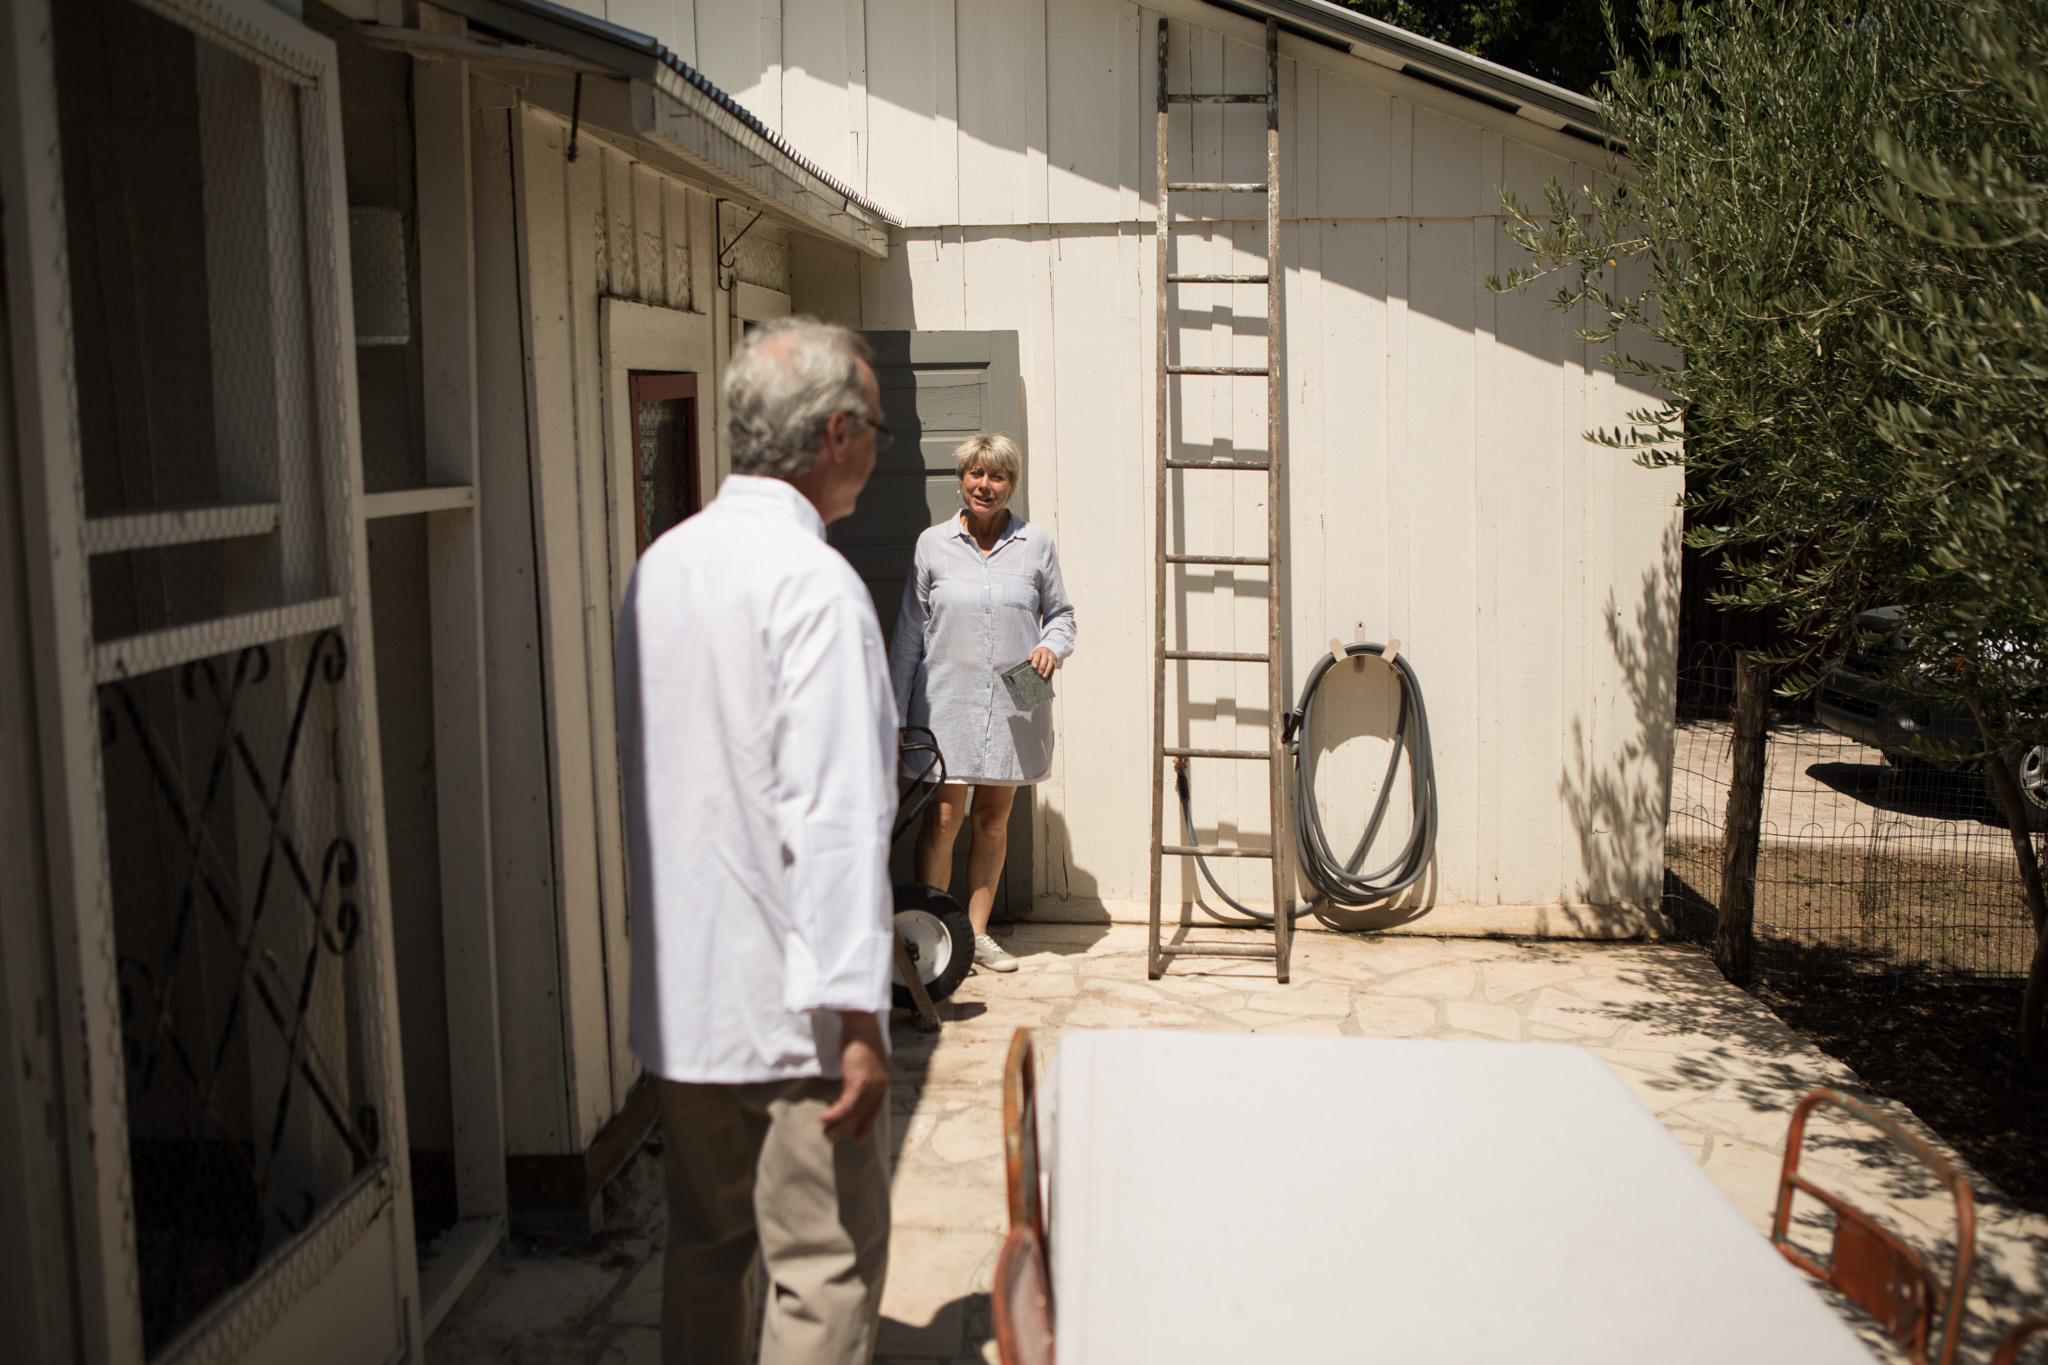 (From right) Outlaw Kitchens Co-Owners Peggy Howe and Paul Sartory chat in their backyard next to the chicken coop.